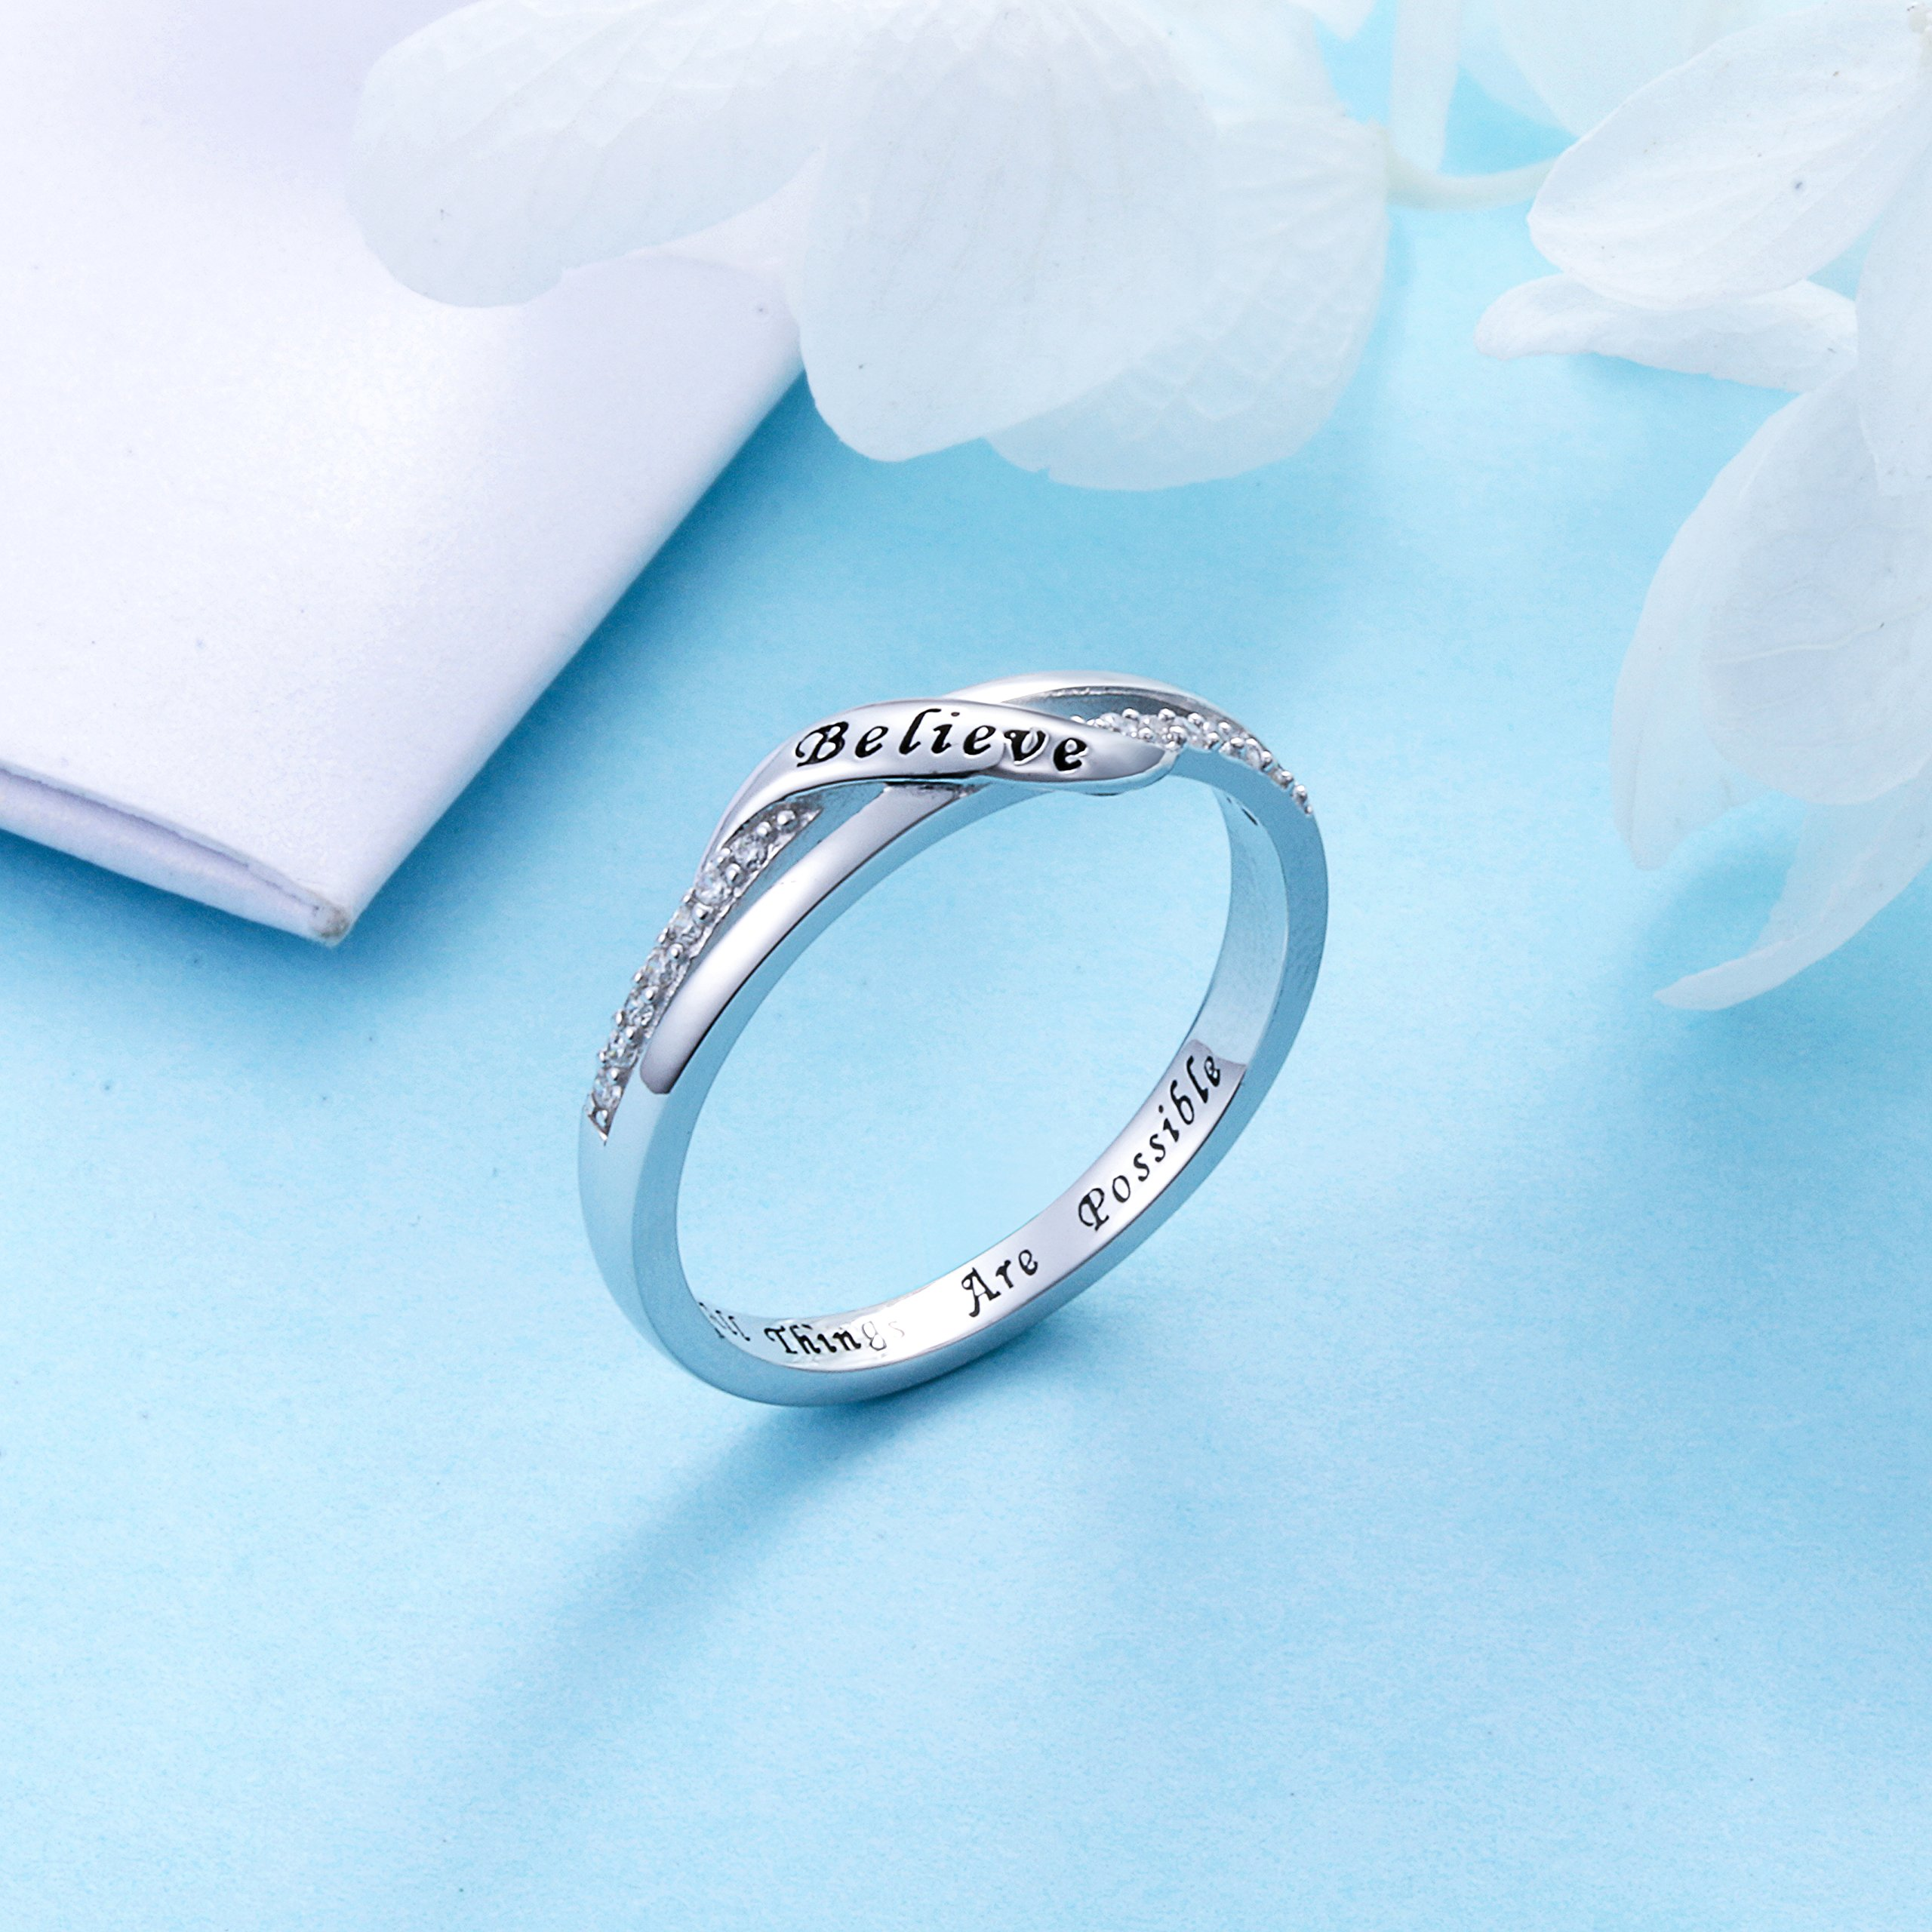 DAOCHONG Inspirational Jewelry Sterling Silver Engraved Believe All Things are Possible Band Ring for Women Girl, Size 6-8 (7) by DAOCHONG (Image #3)